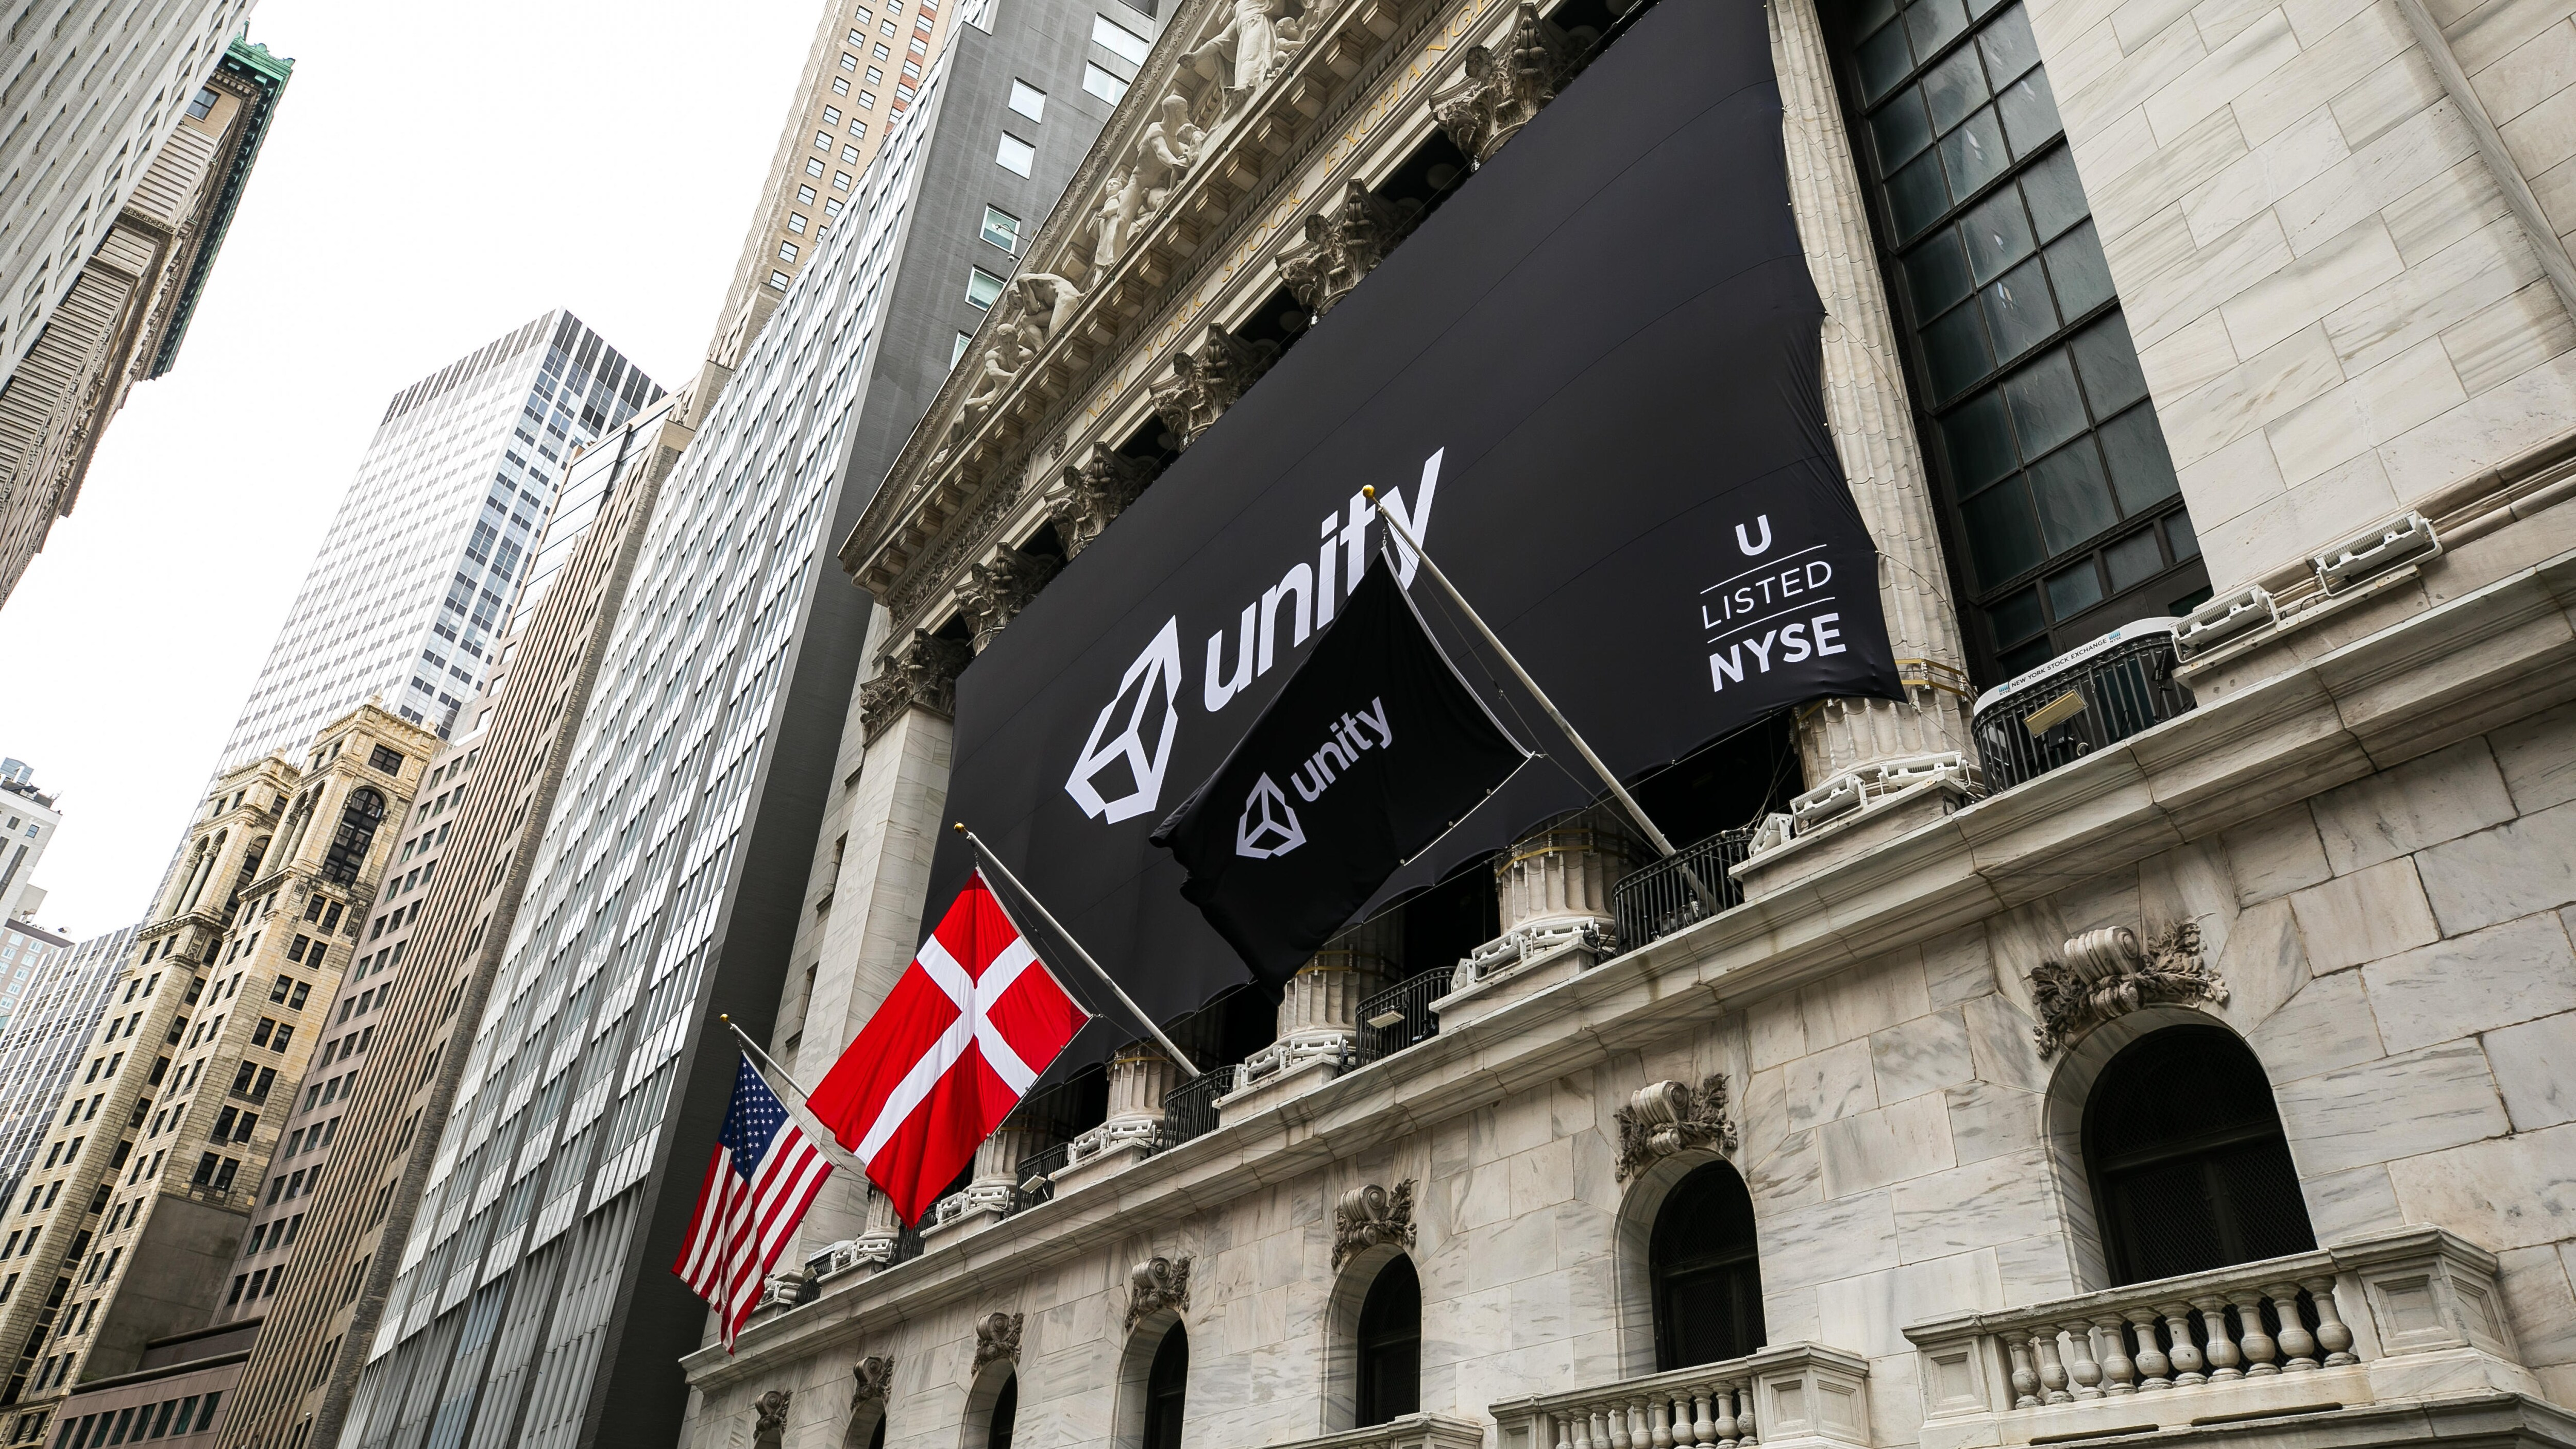 Unity banner and flags on the NYSE building